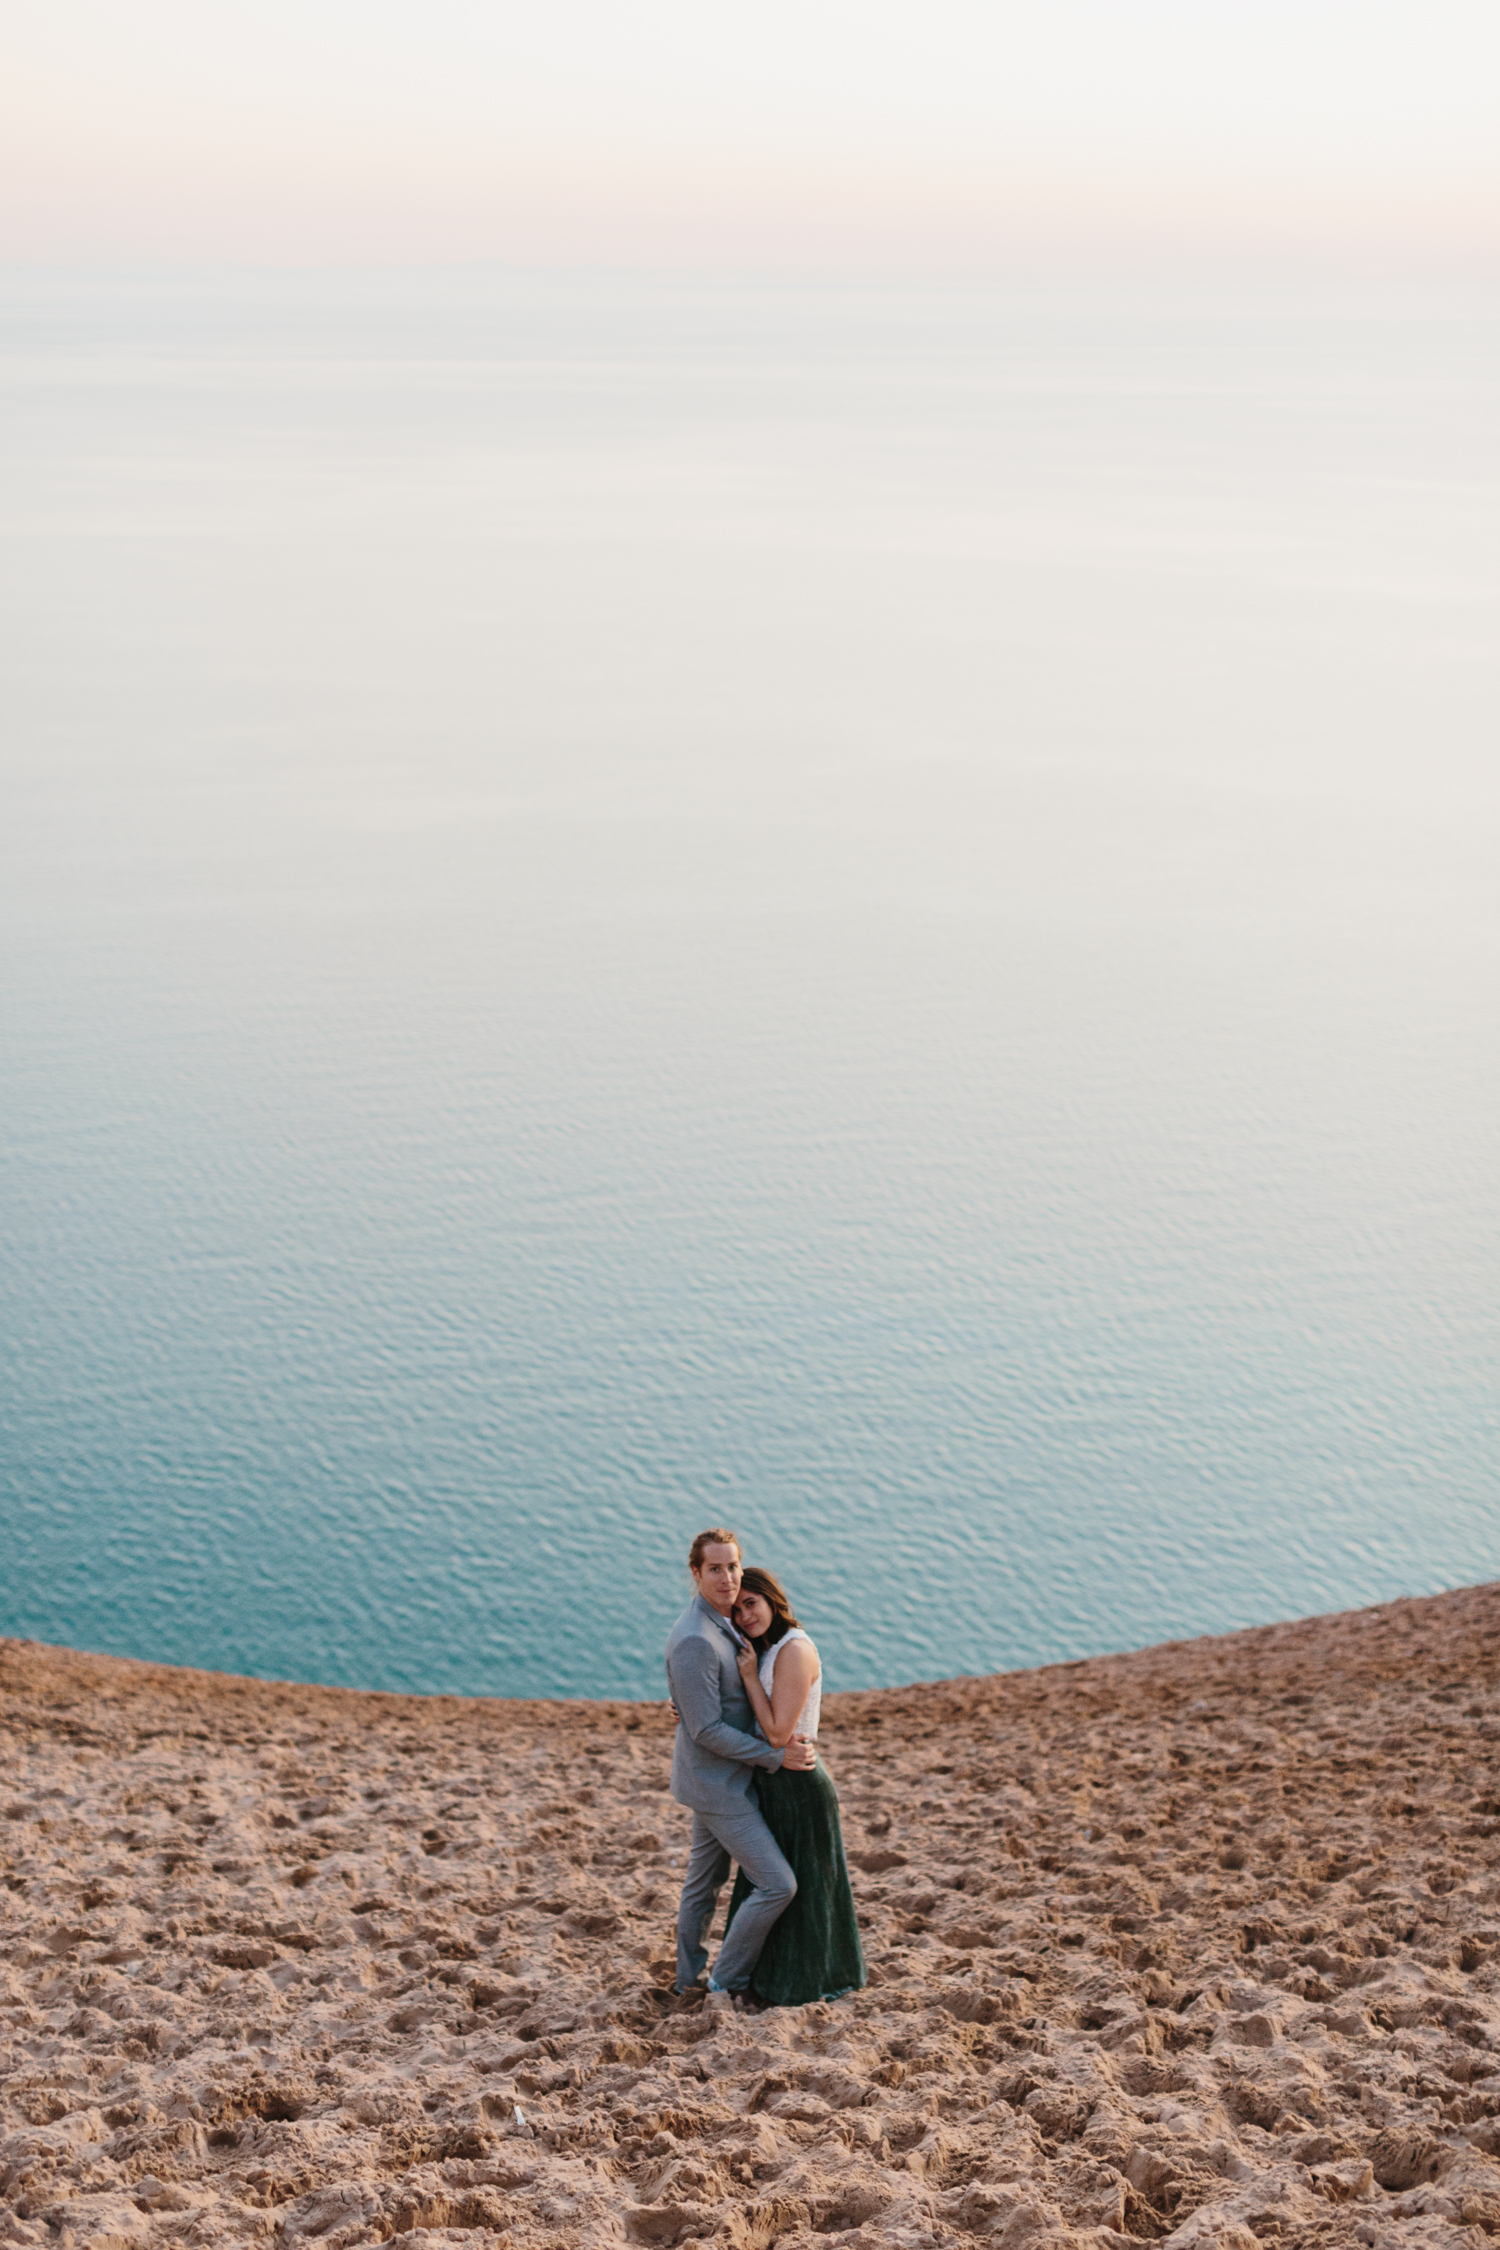 Sleeping Bear Dunes Elopement Wedding Photography by Mae Stier Northern Michigan Photographer-033.jpg